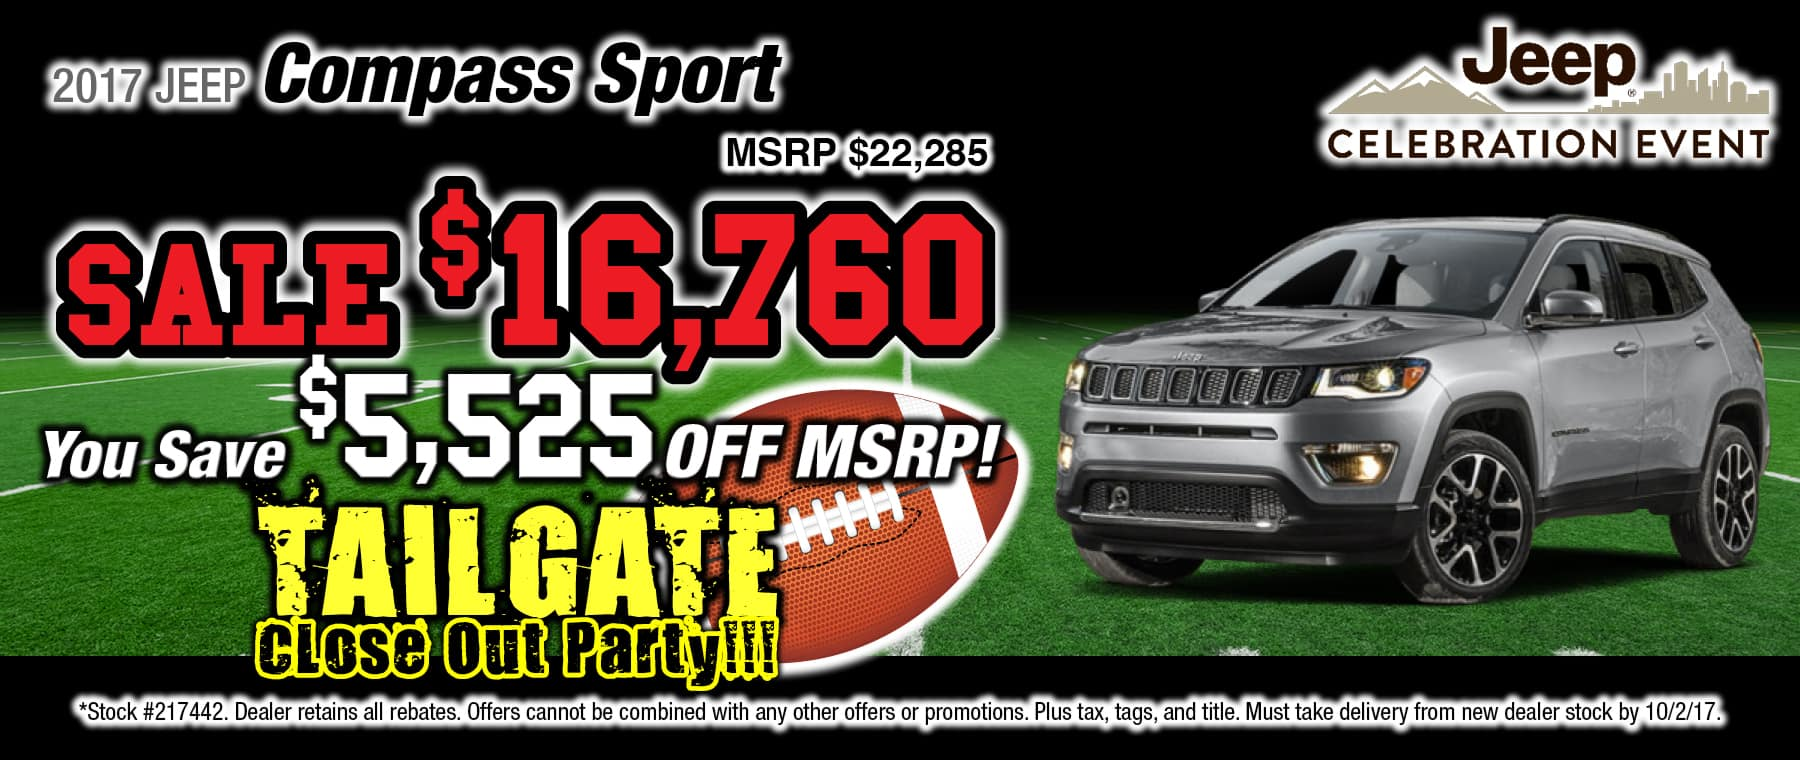 2017 Jeep Compass Sport Special at Thomson Jeep in Thomson, GA